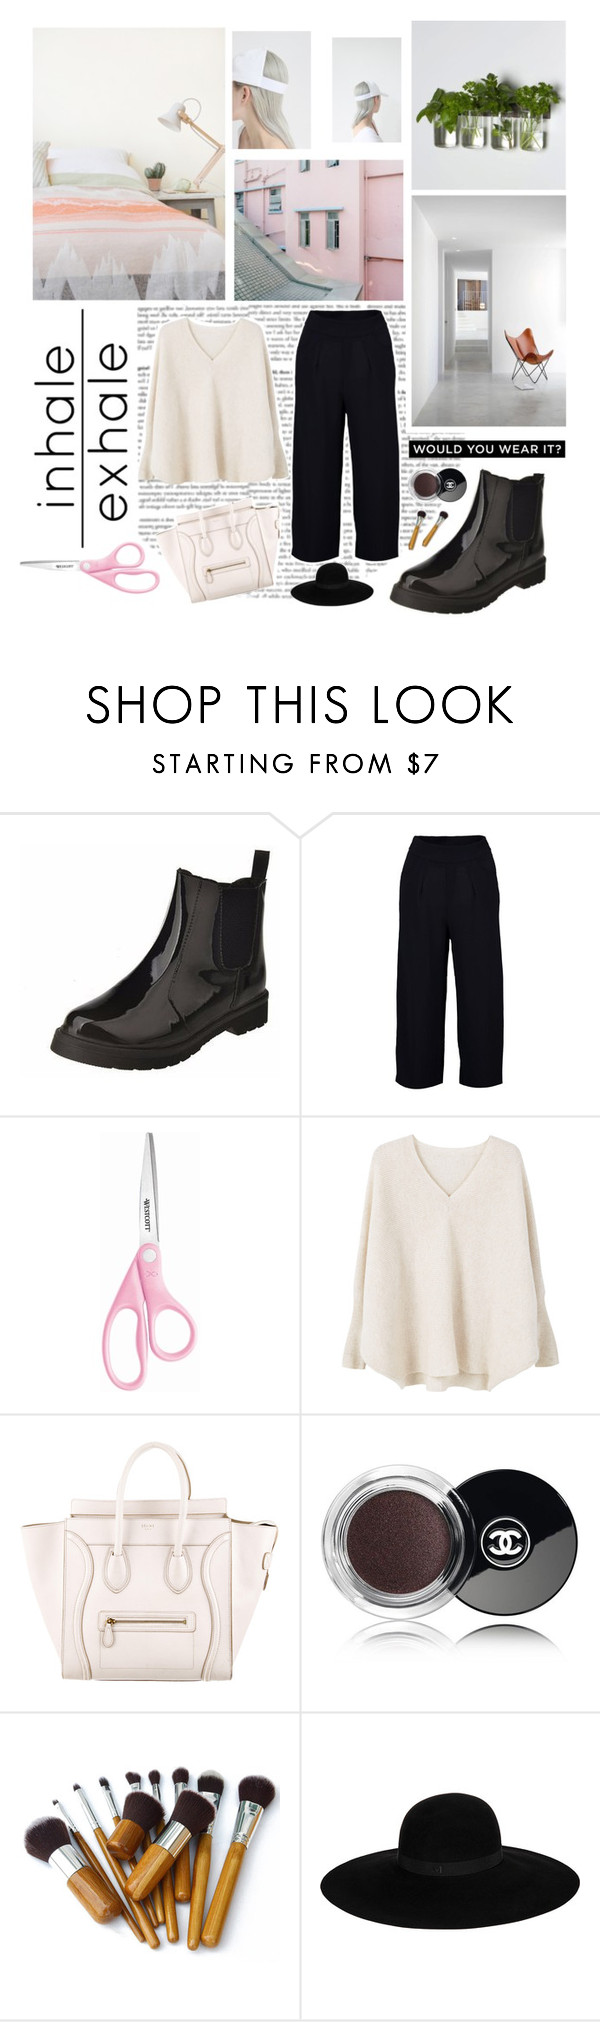 """""""Cognition"""" by coreeadis ❤ liked on Polyvore featuring Boohoo, MANGO, CÉLINE, Chanel and Maison Michel"""